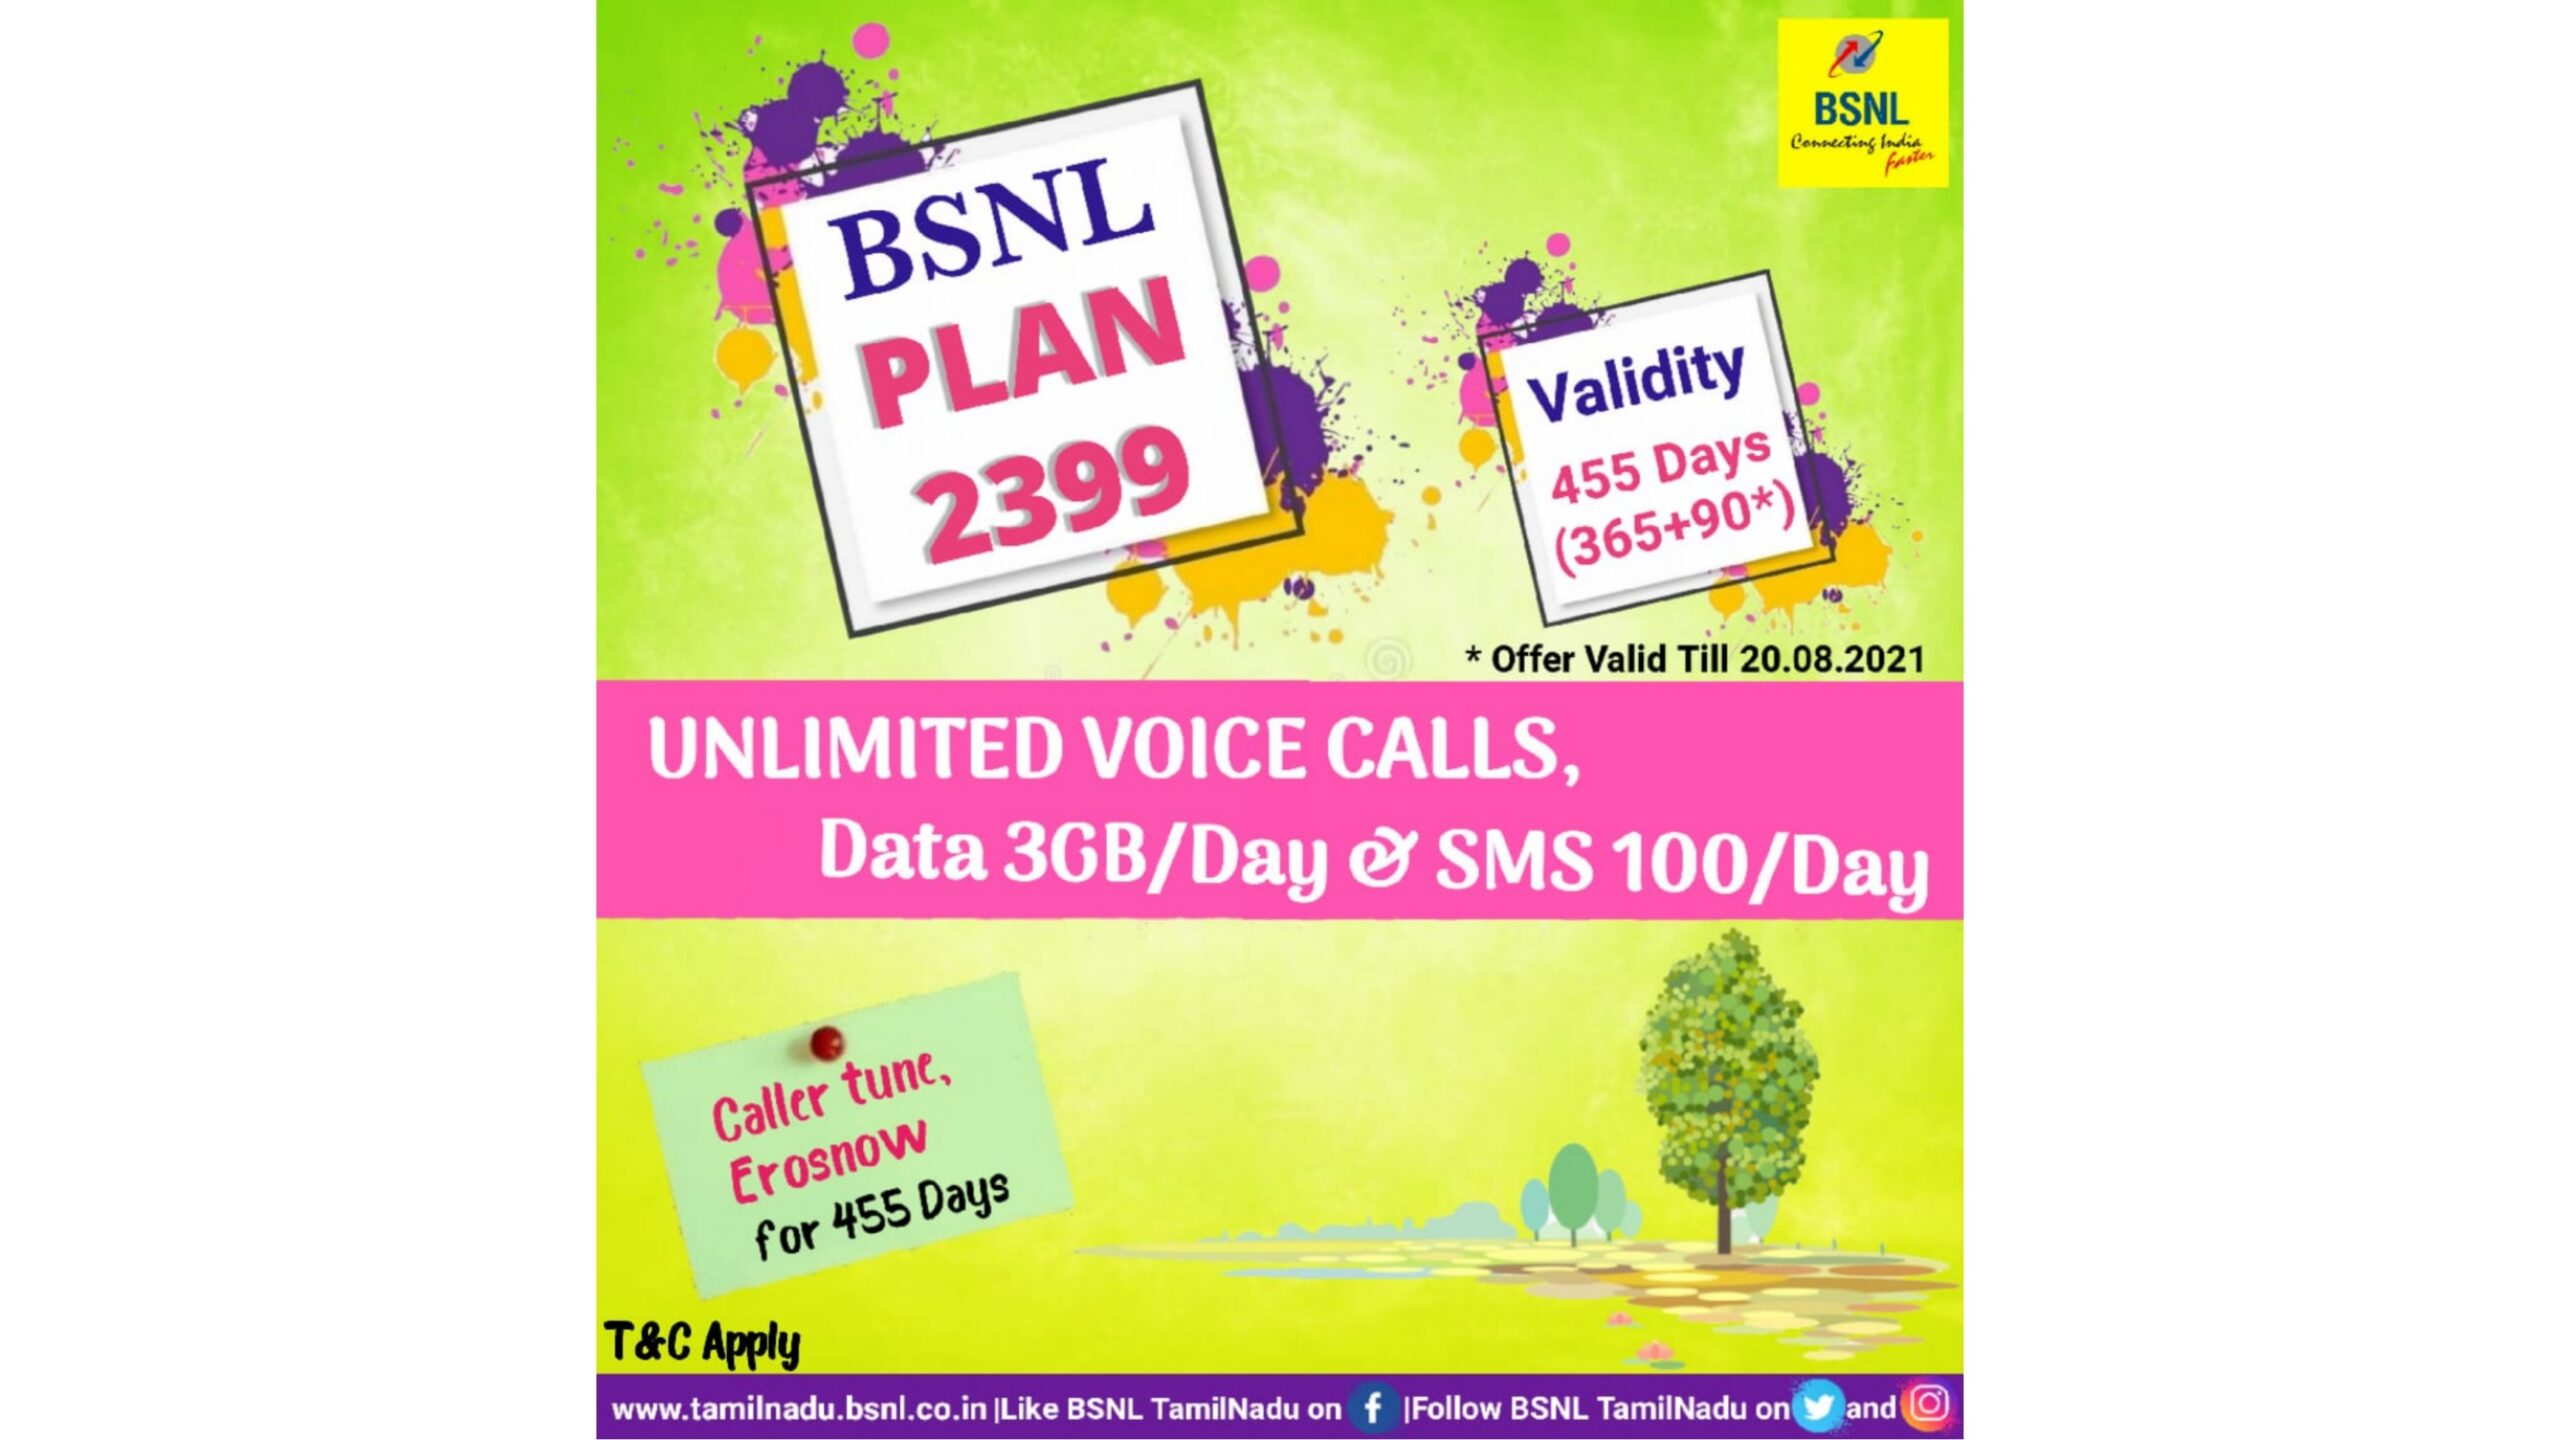 BSNL PV 2399 455 Days Validity scaled